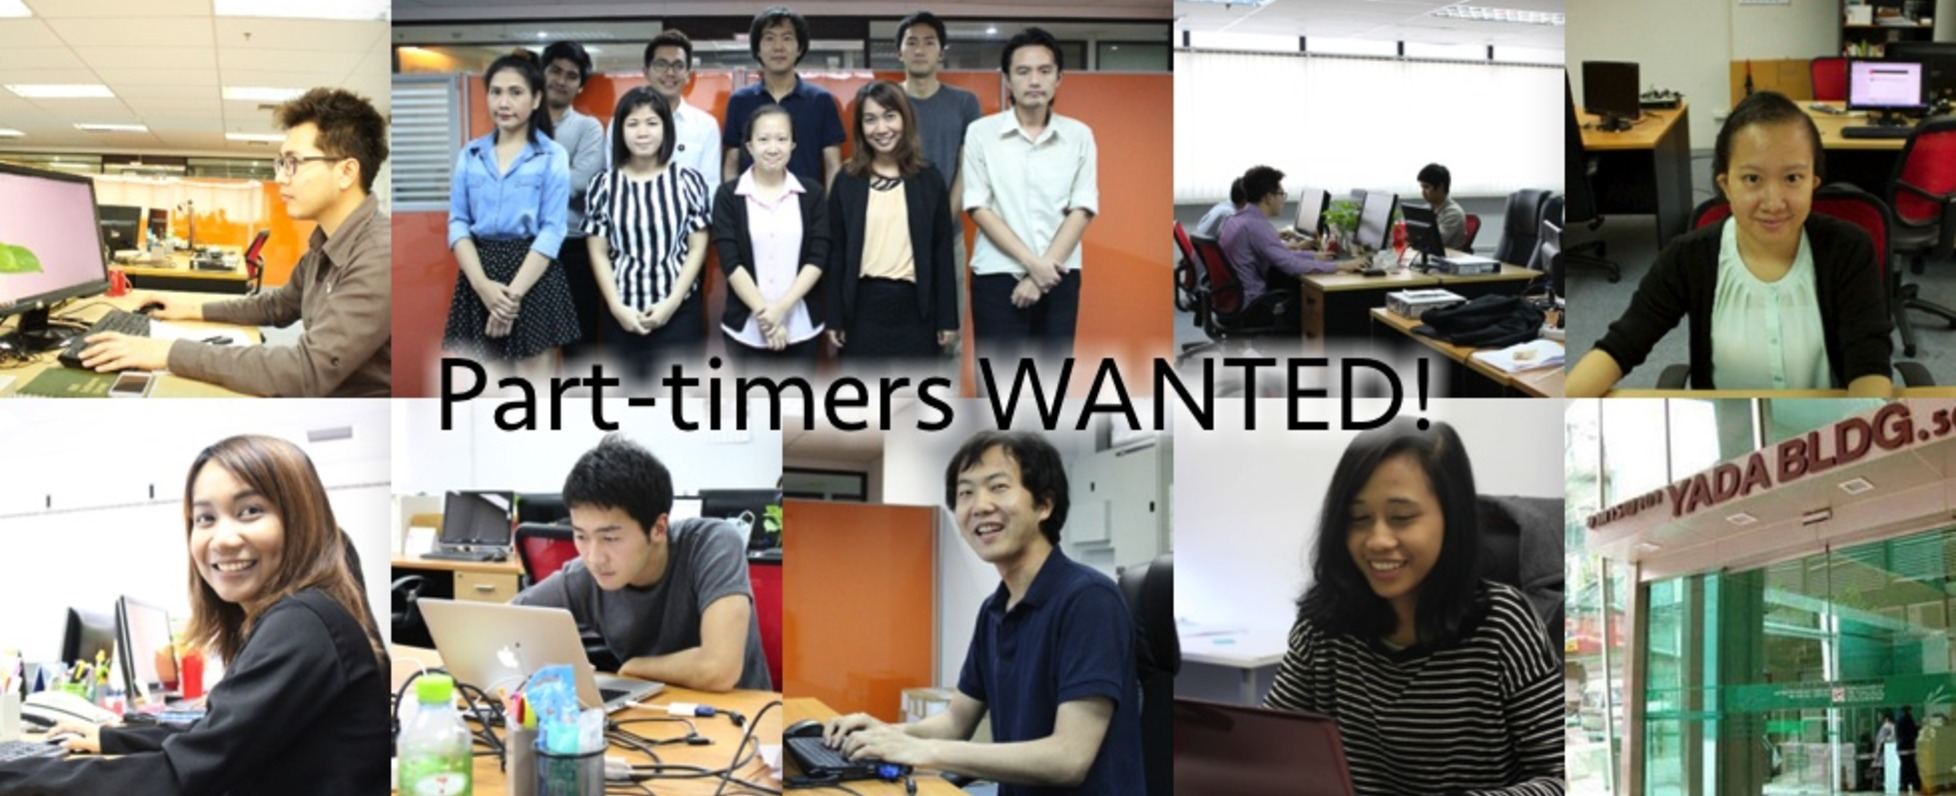 multilingual part timers wanted jobs at サイトエンジン株式会社